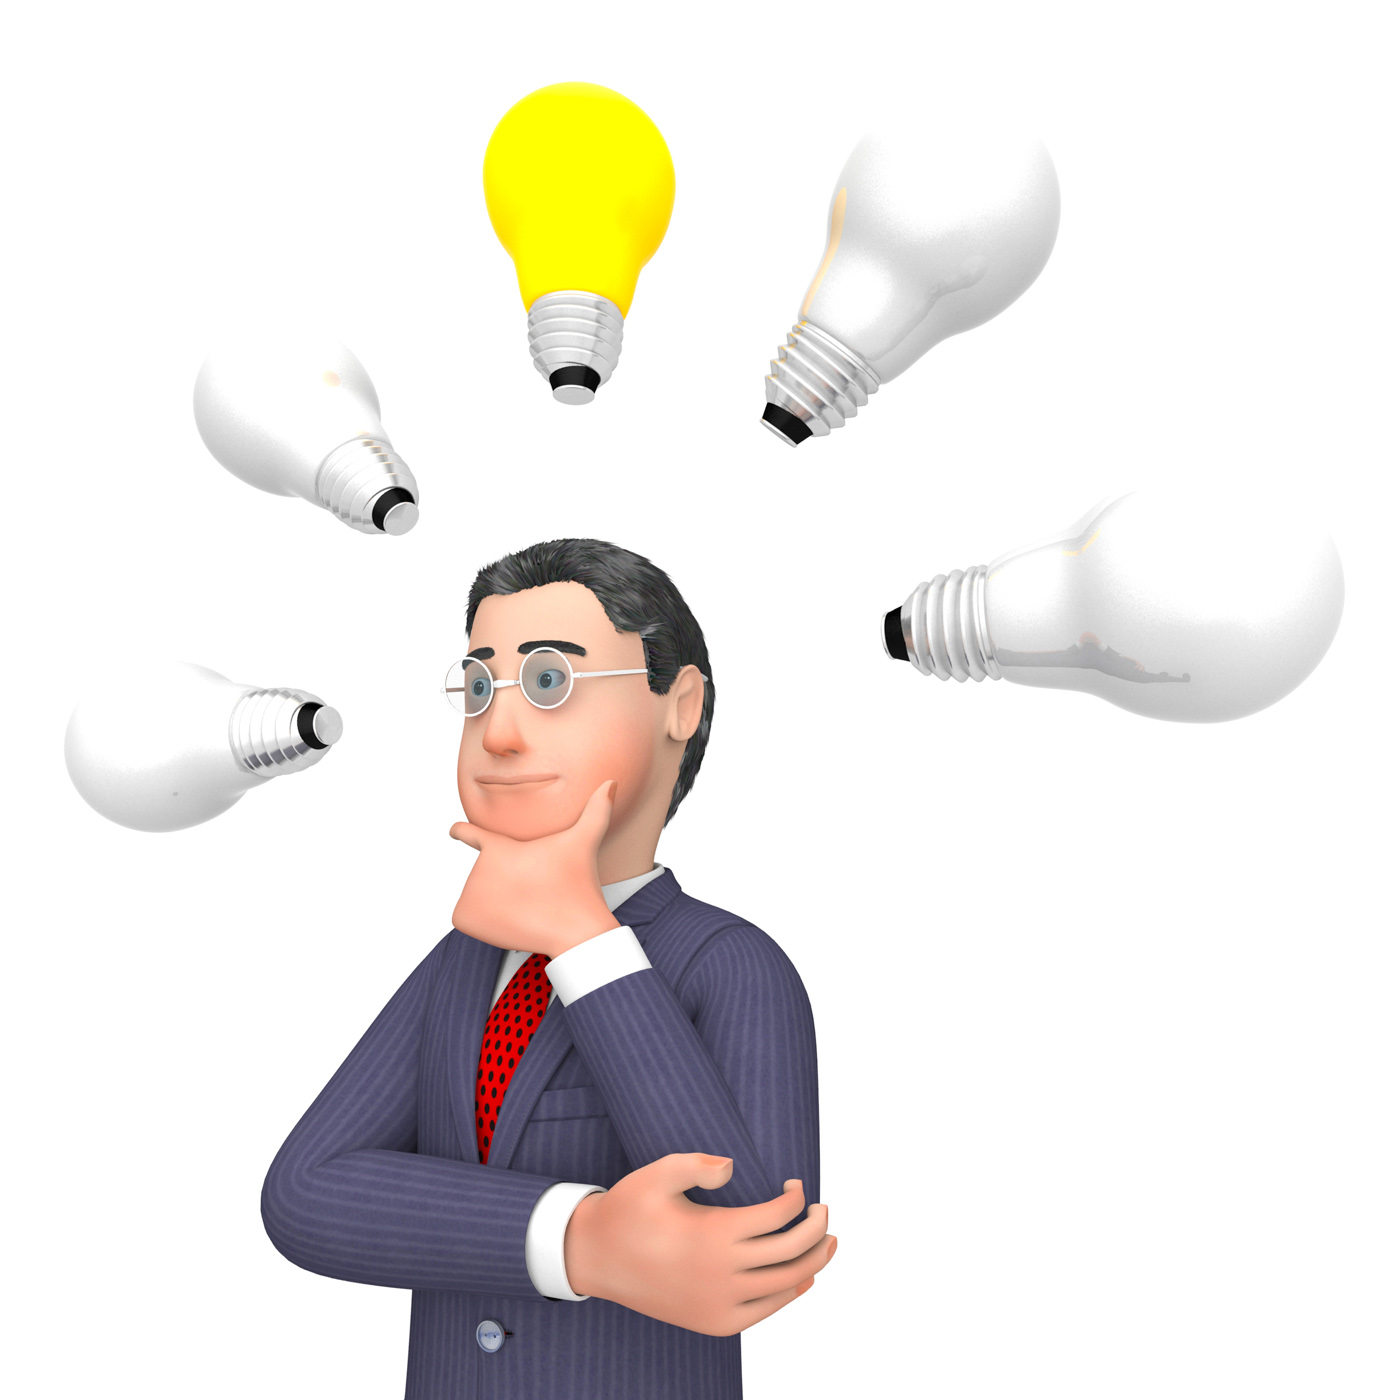 Lightbulbs Businessman Indicates Power Sources And Character 3d Render, Plan, Lamp, Lamps, Lightbulb, HQ Photo